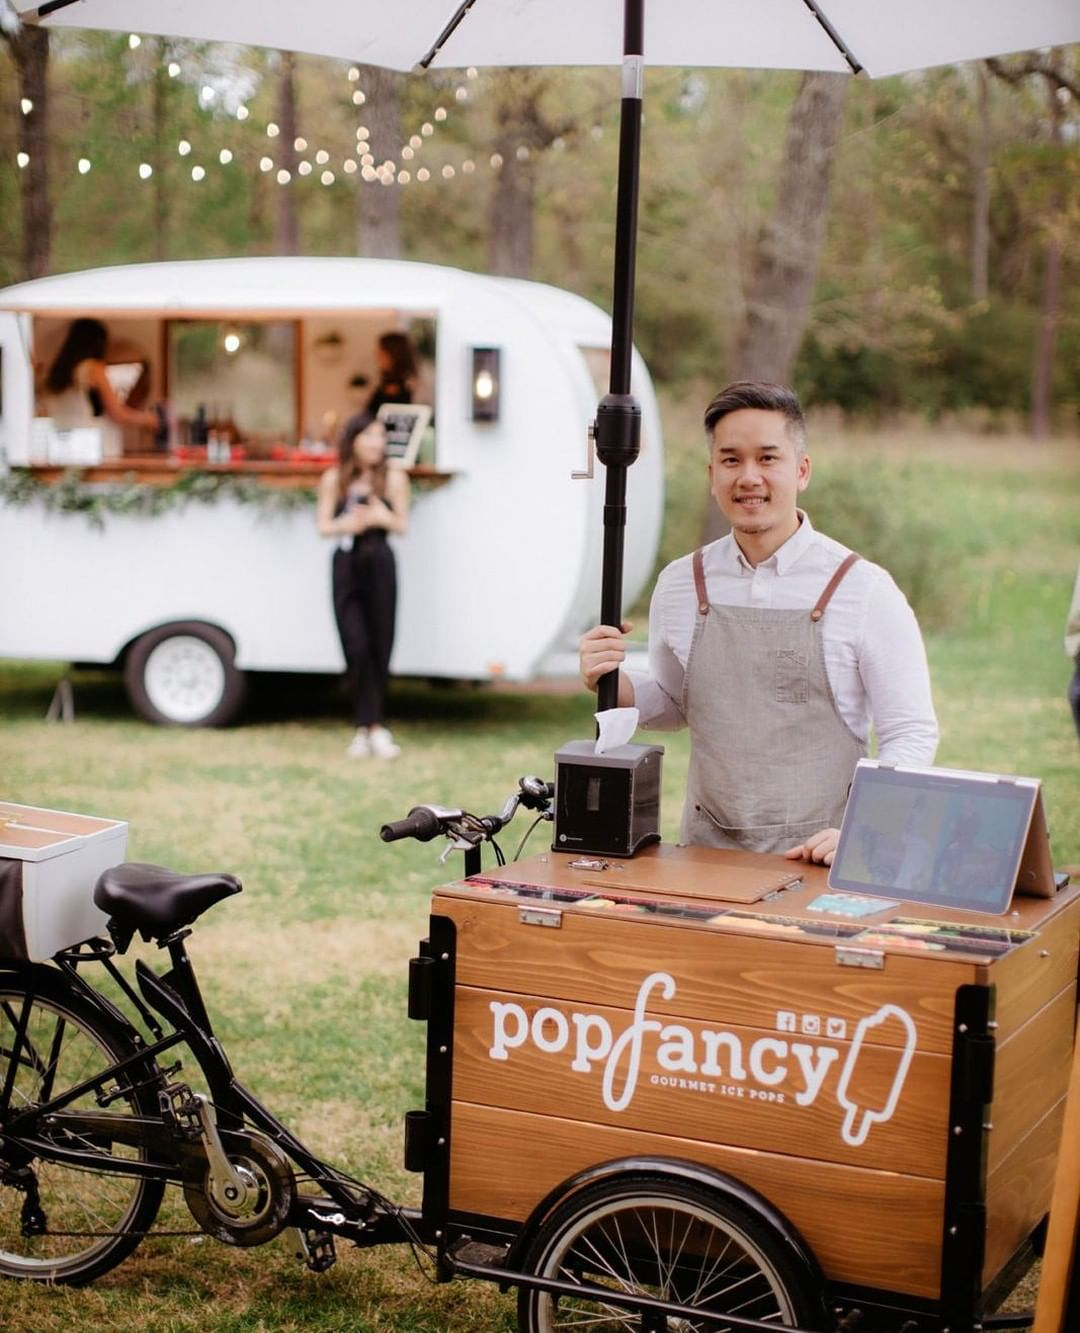 man posing with Popfancy cedar wood ice cream bike in front of a food cart